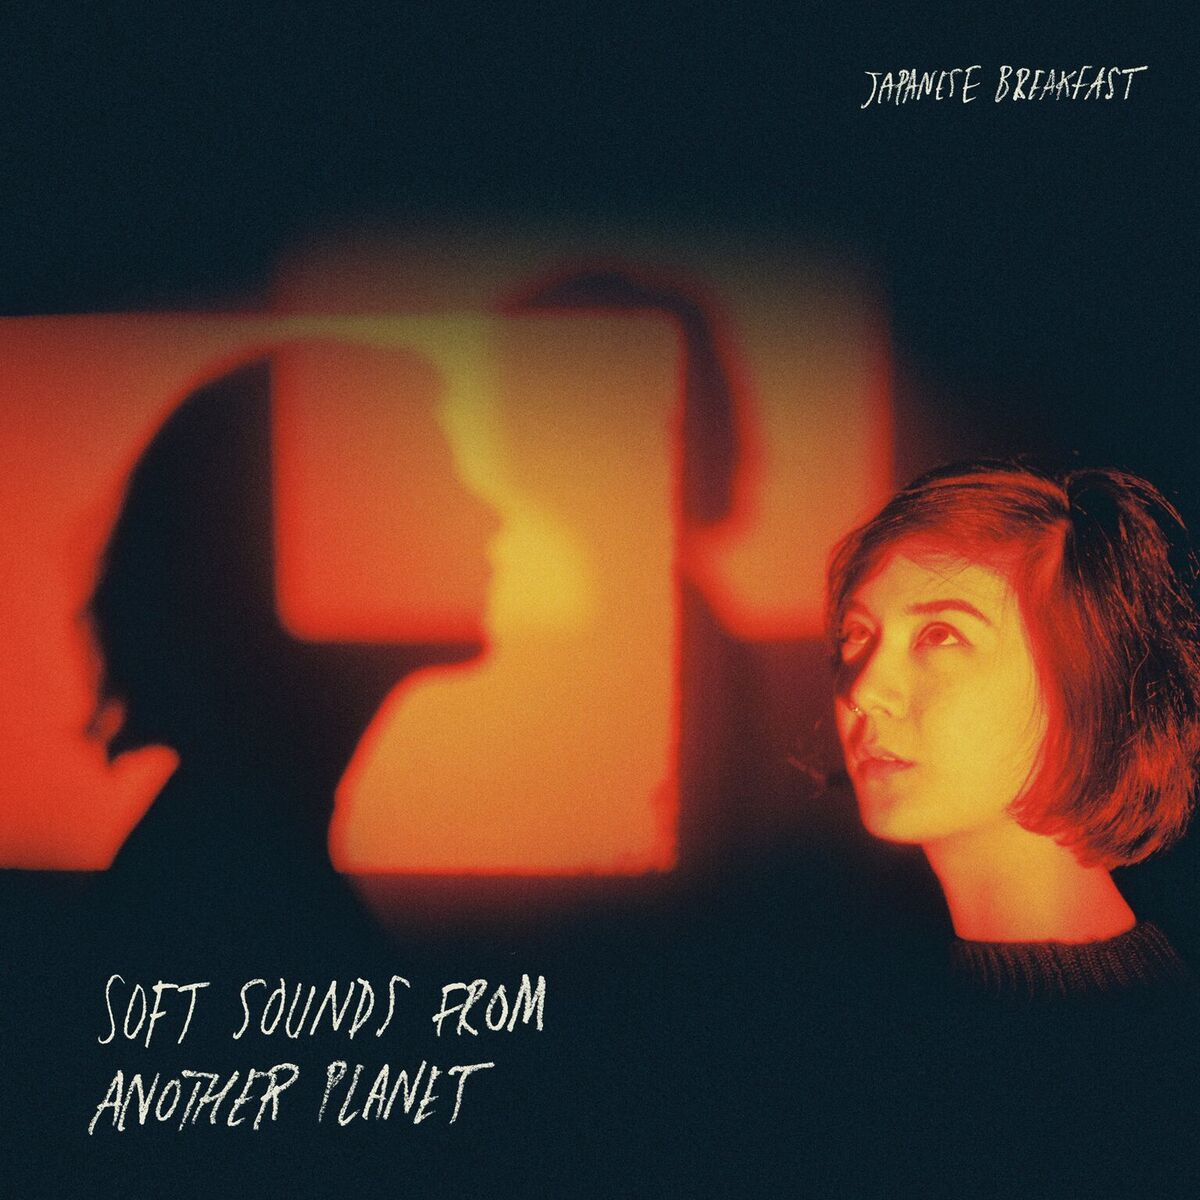 Review of Japanese Breakfasts' 'Soft Sounds from Another Planet'